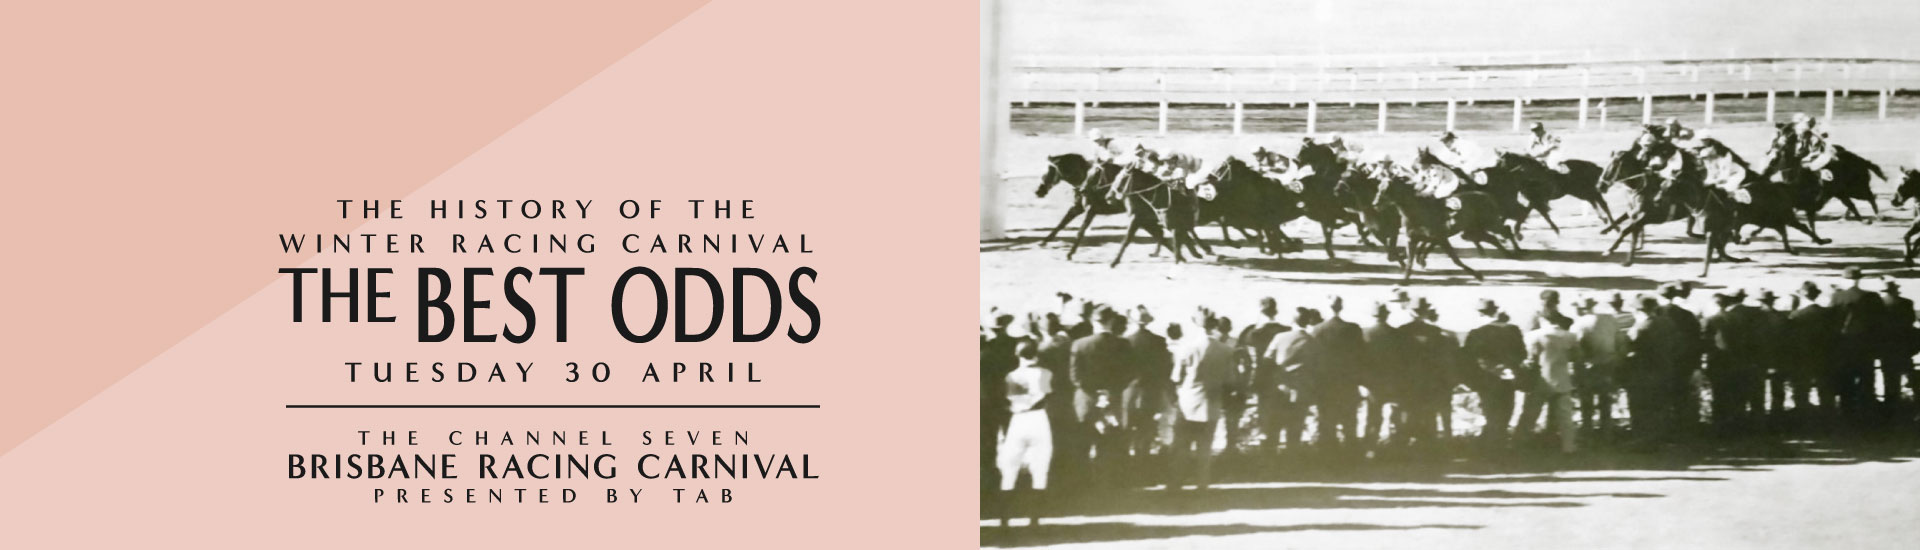 History of the Winter Racing Museum Event | Brisbane Racing Club